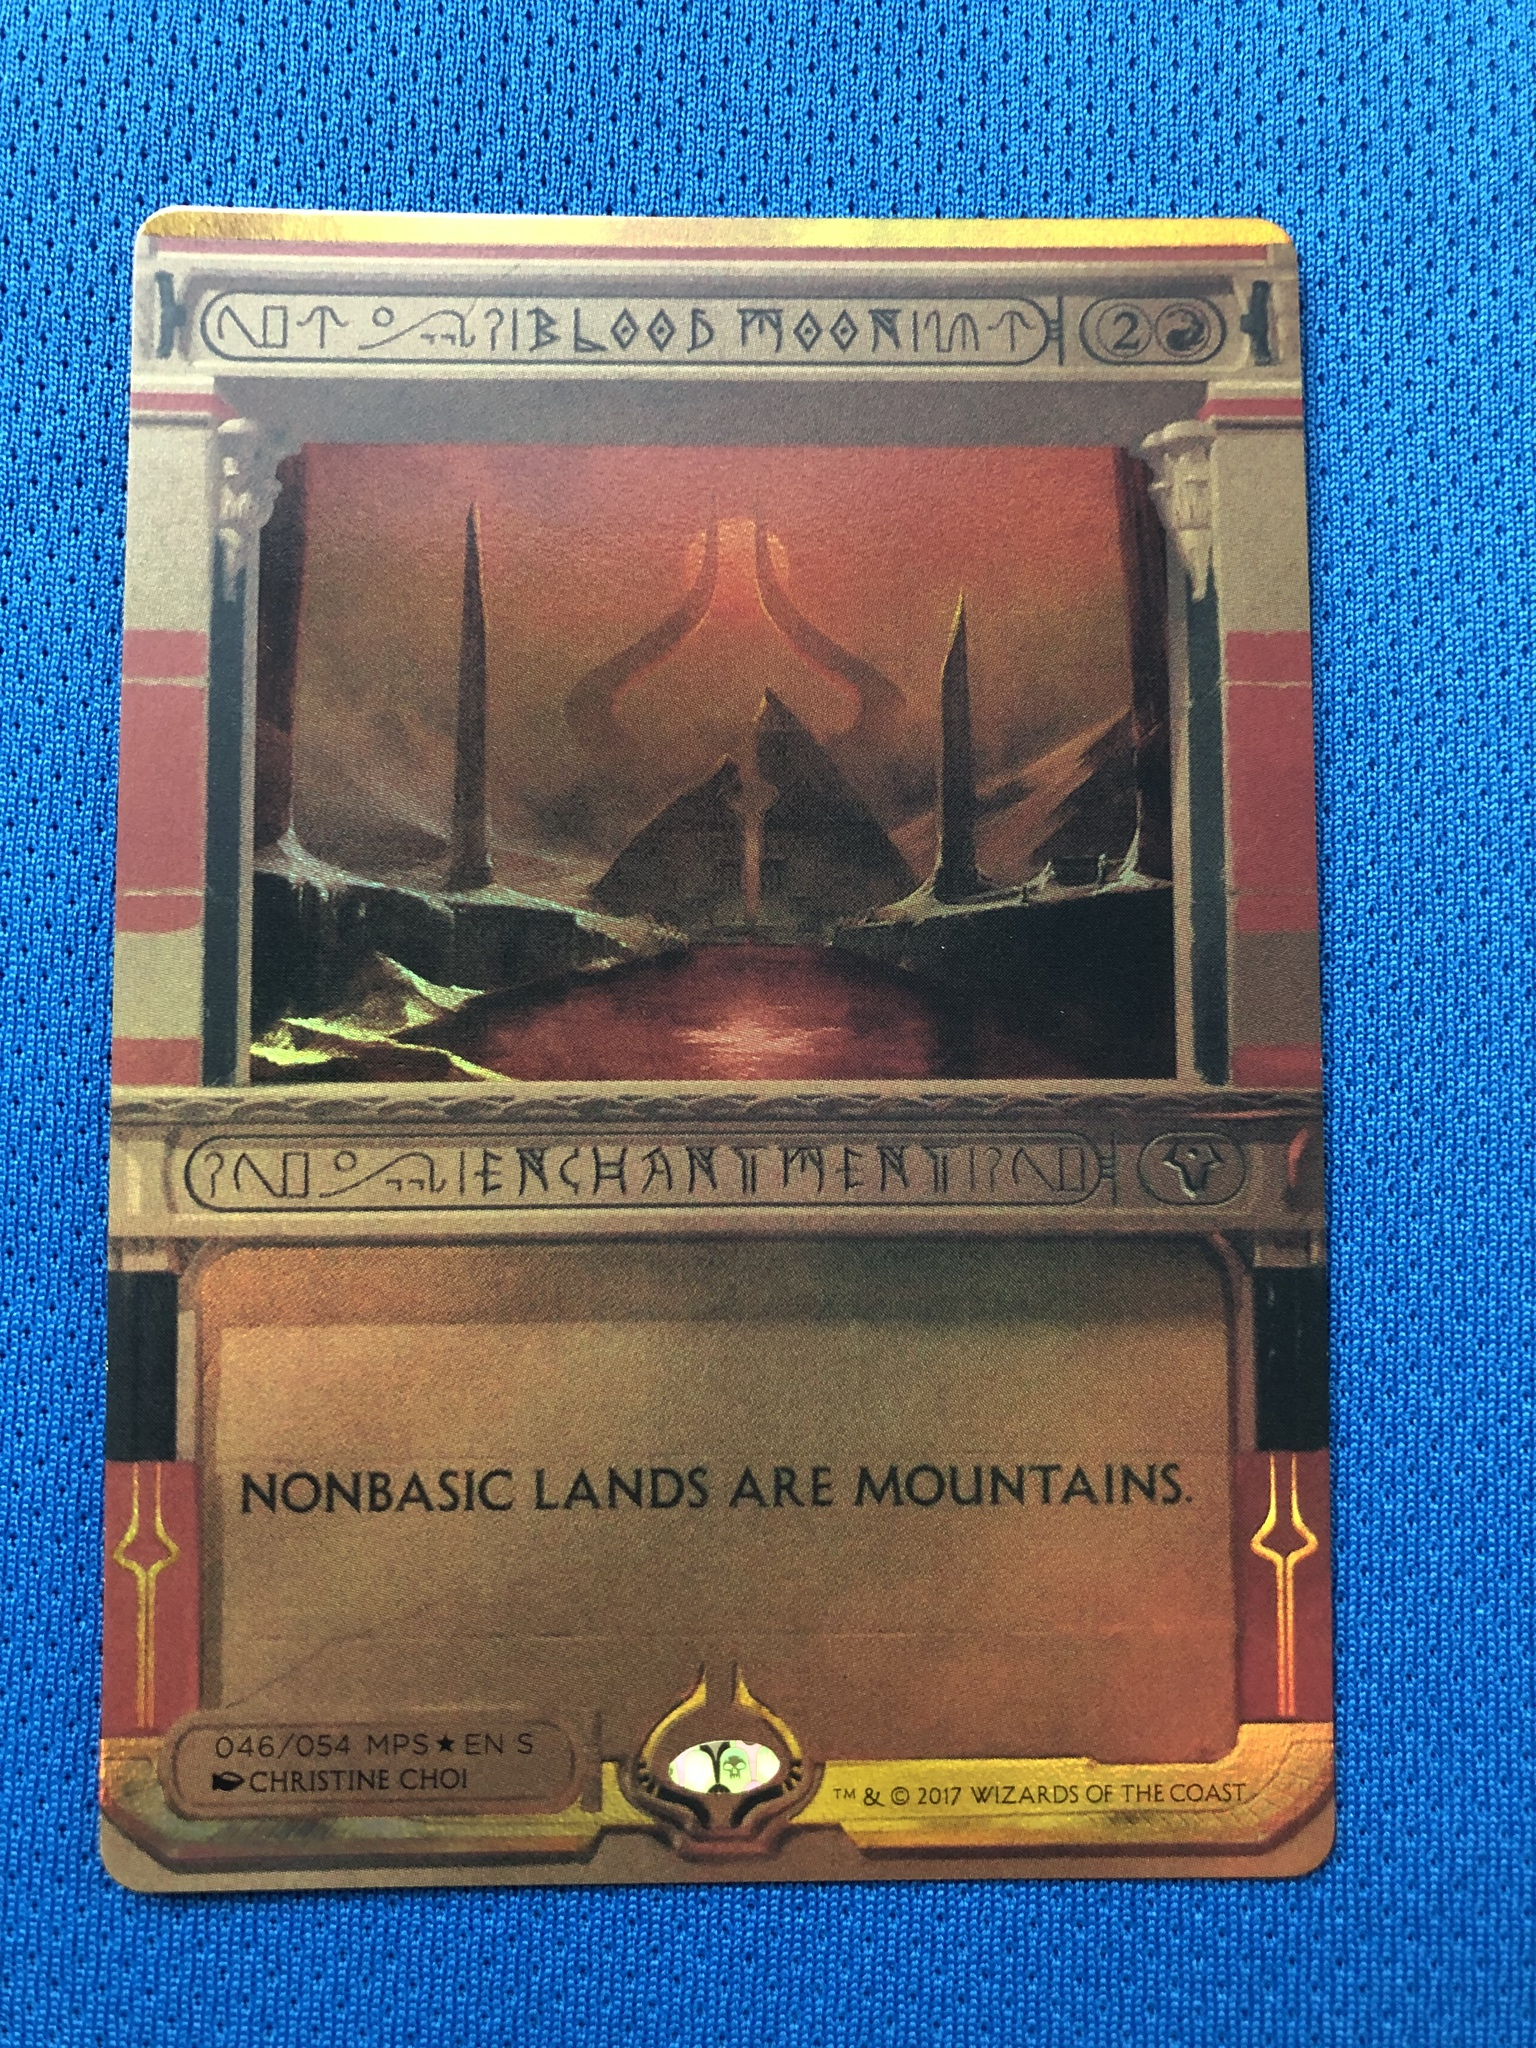 Blood MoonAmonkhet Invocations (MP2) Golden Holofoil Magician ProxyKing 8.0 VIP The Proxy Cards To Gathering Single Mg Card.